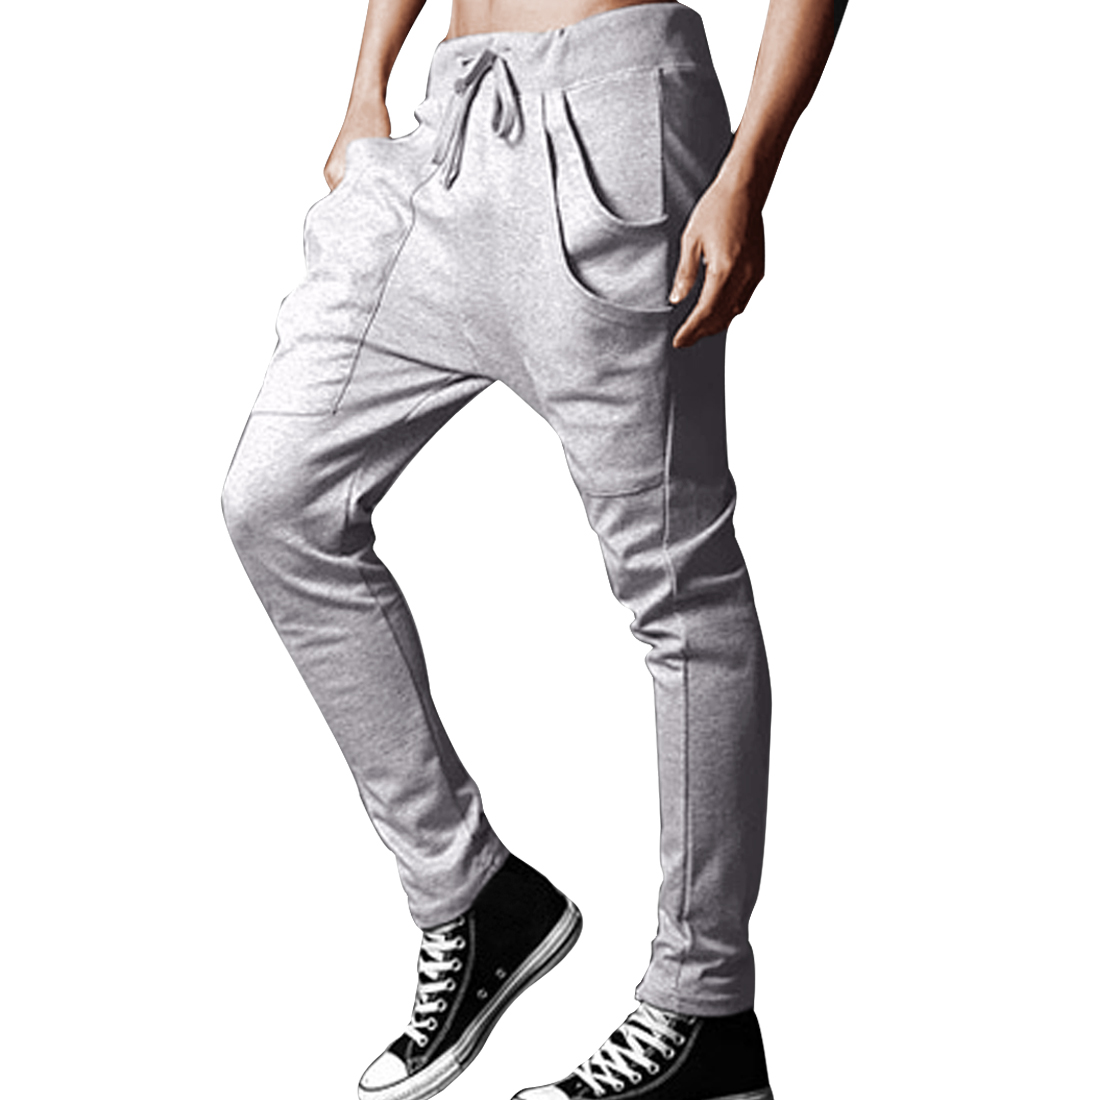 Men Drawstring Elastic Waist Slant Pockets Front Solid Color Harem Pants Light Gray W30